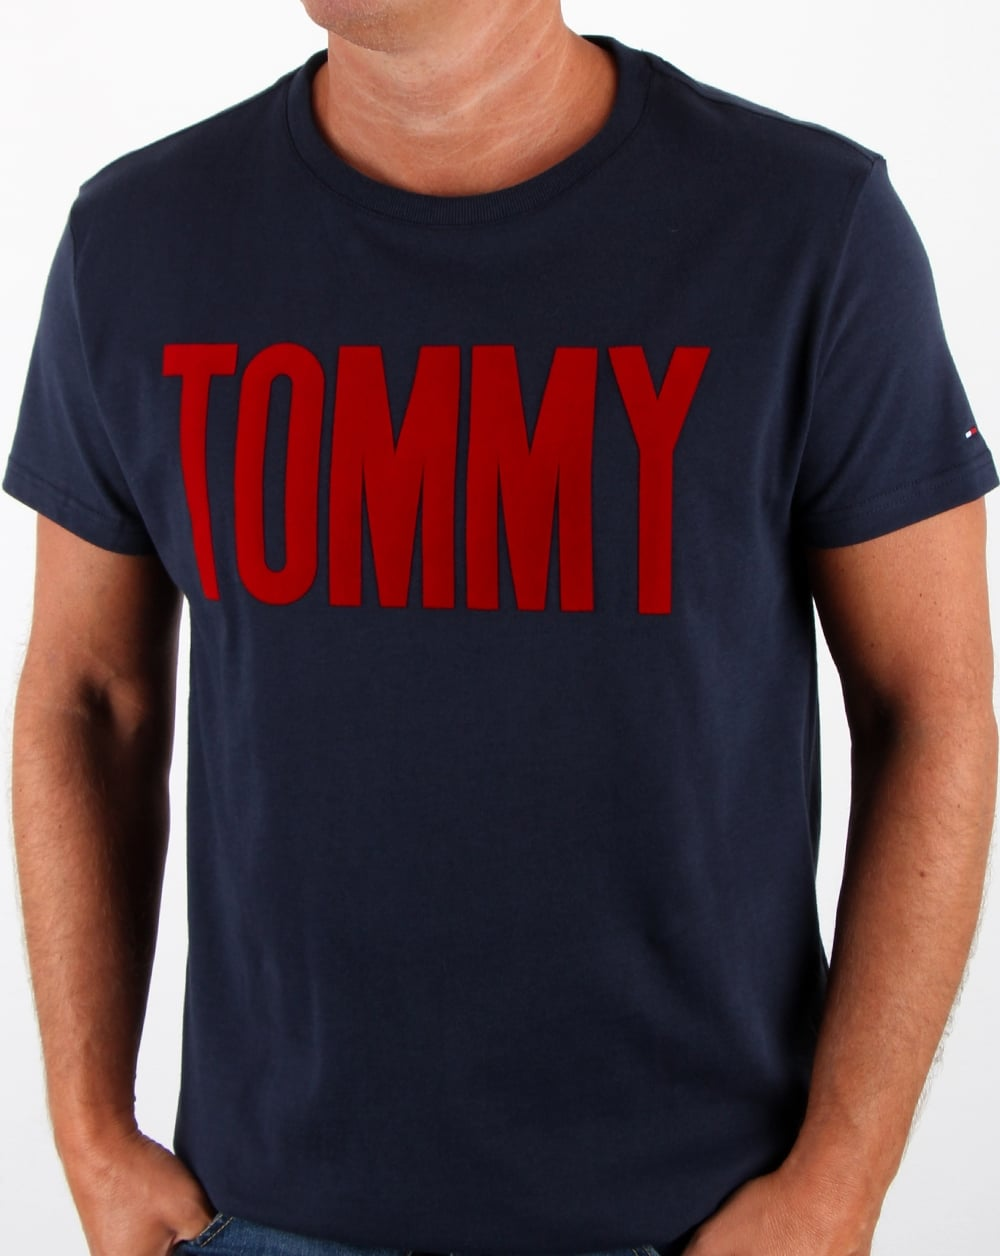 tommy hilfiger logo t shirt navy men 39 s tee cotton crew. Black Bedroom Furniture Sets. Home Design Ideas